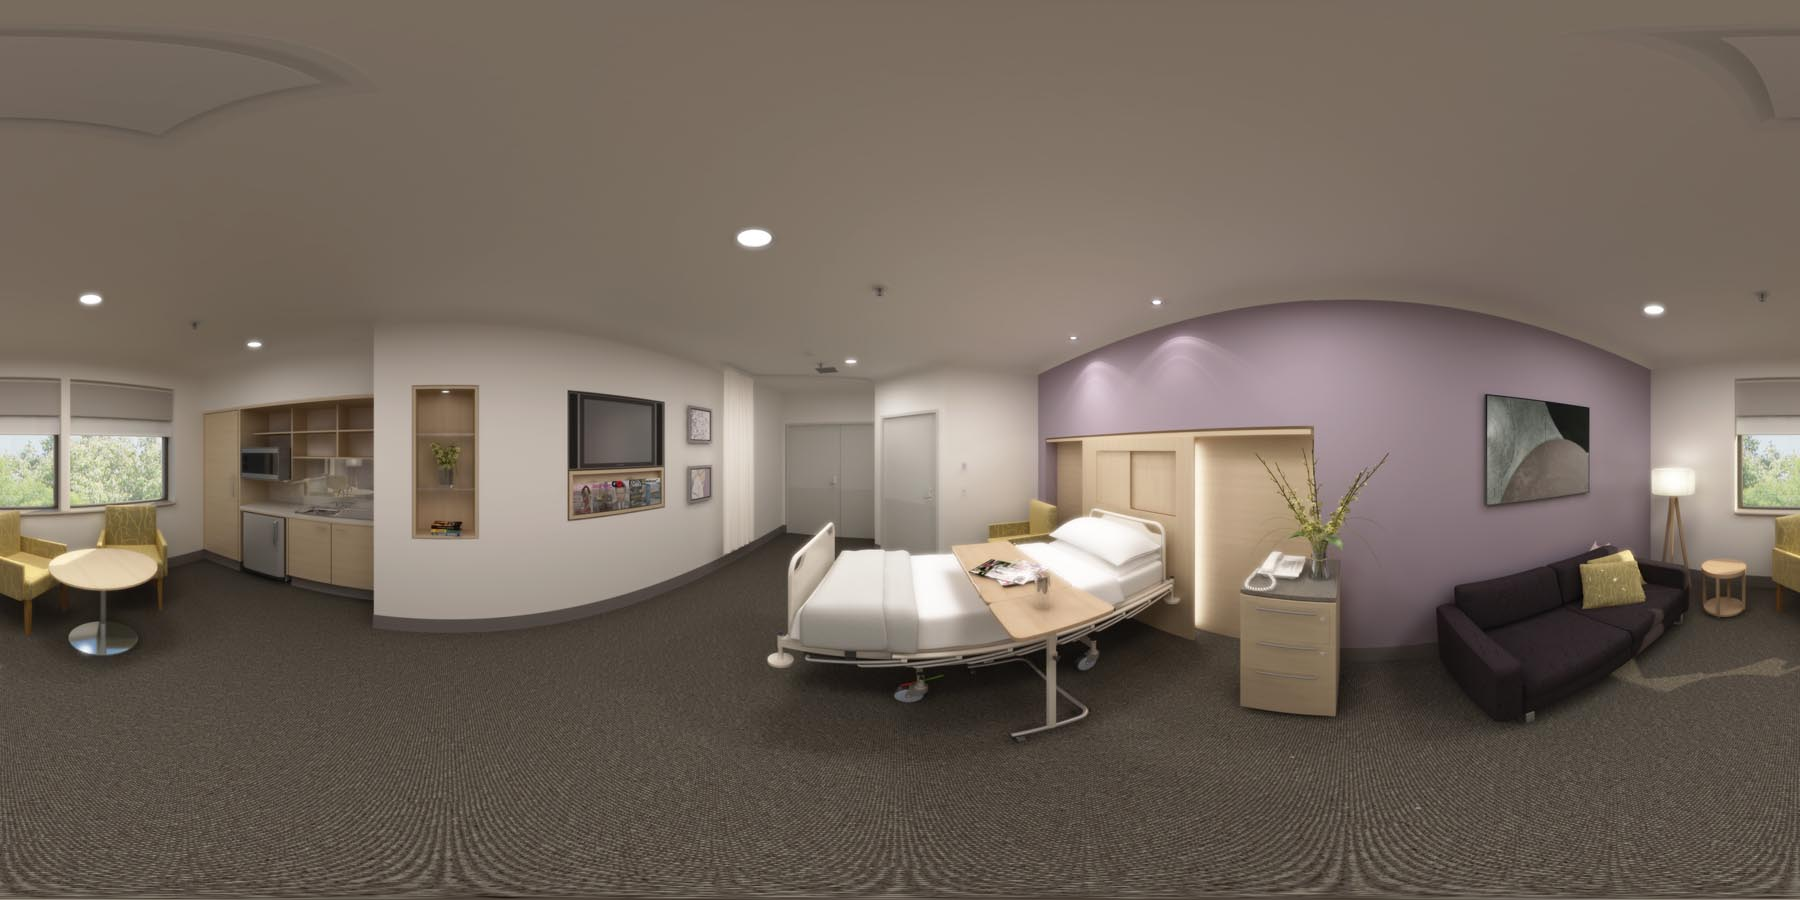 360 VR_bedroom_health care hospital